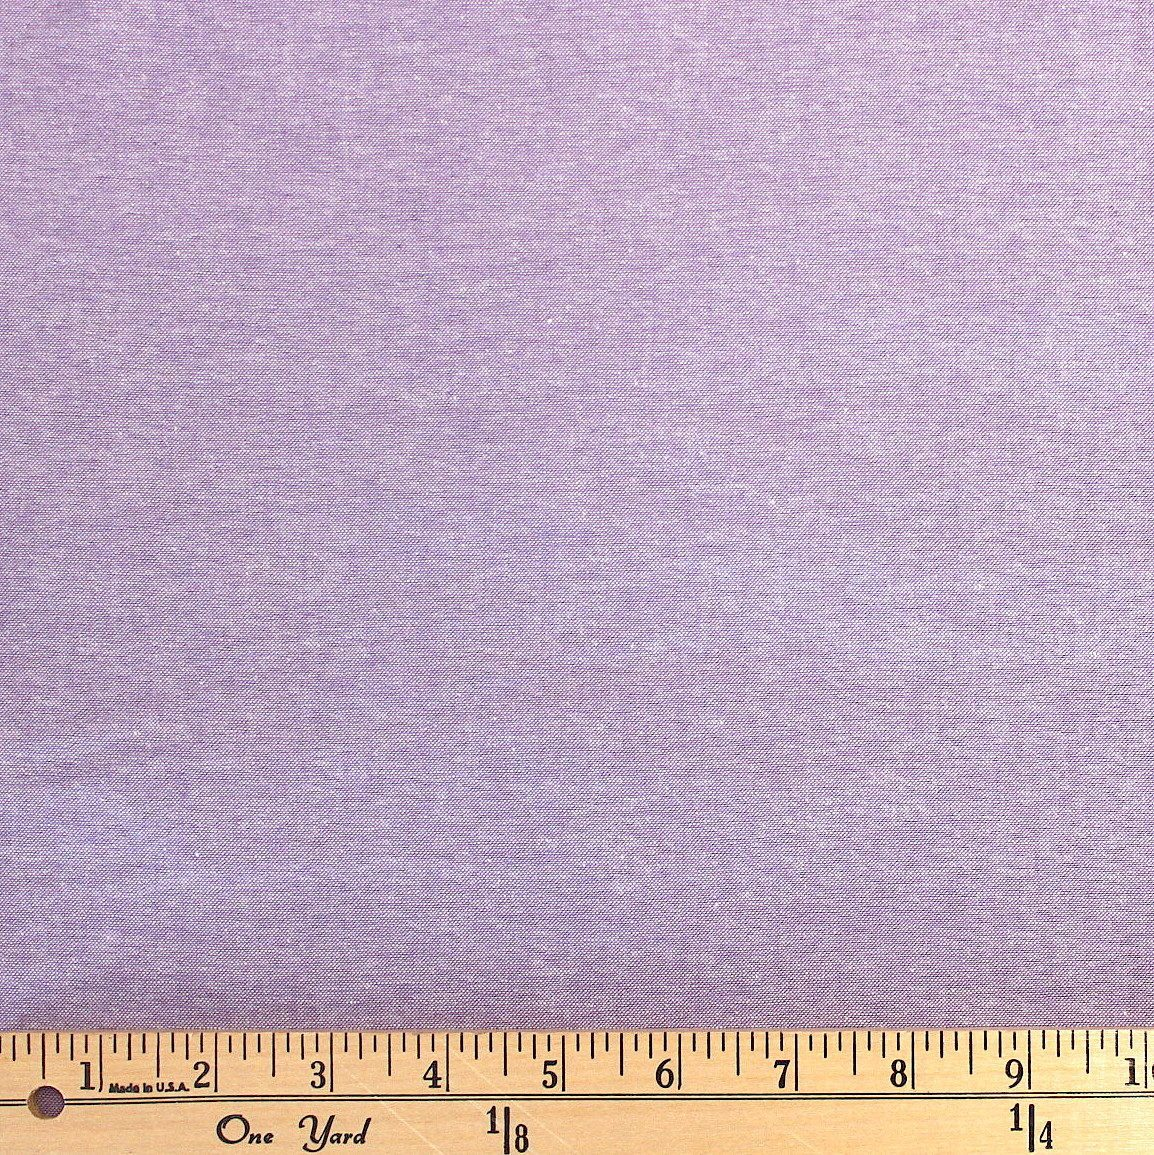 Lavender Purple Medium Weight Chambray, 1 Yard - Raspberry Creek Fabrics